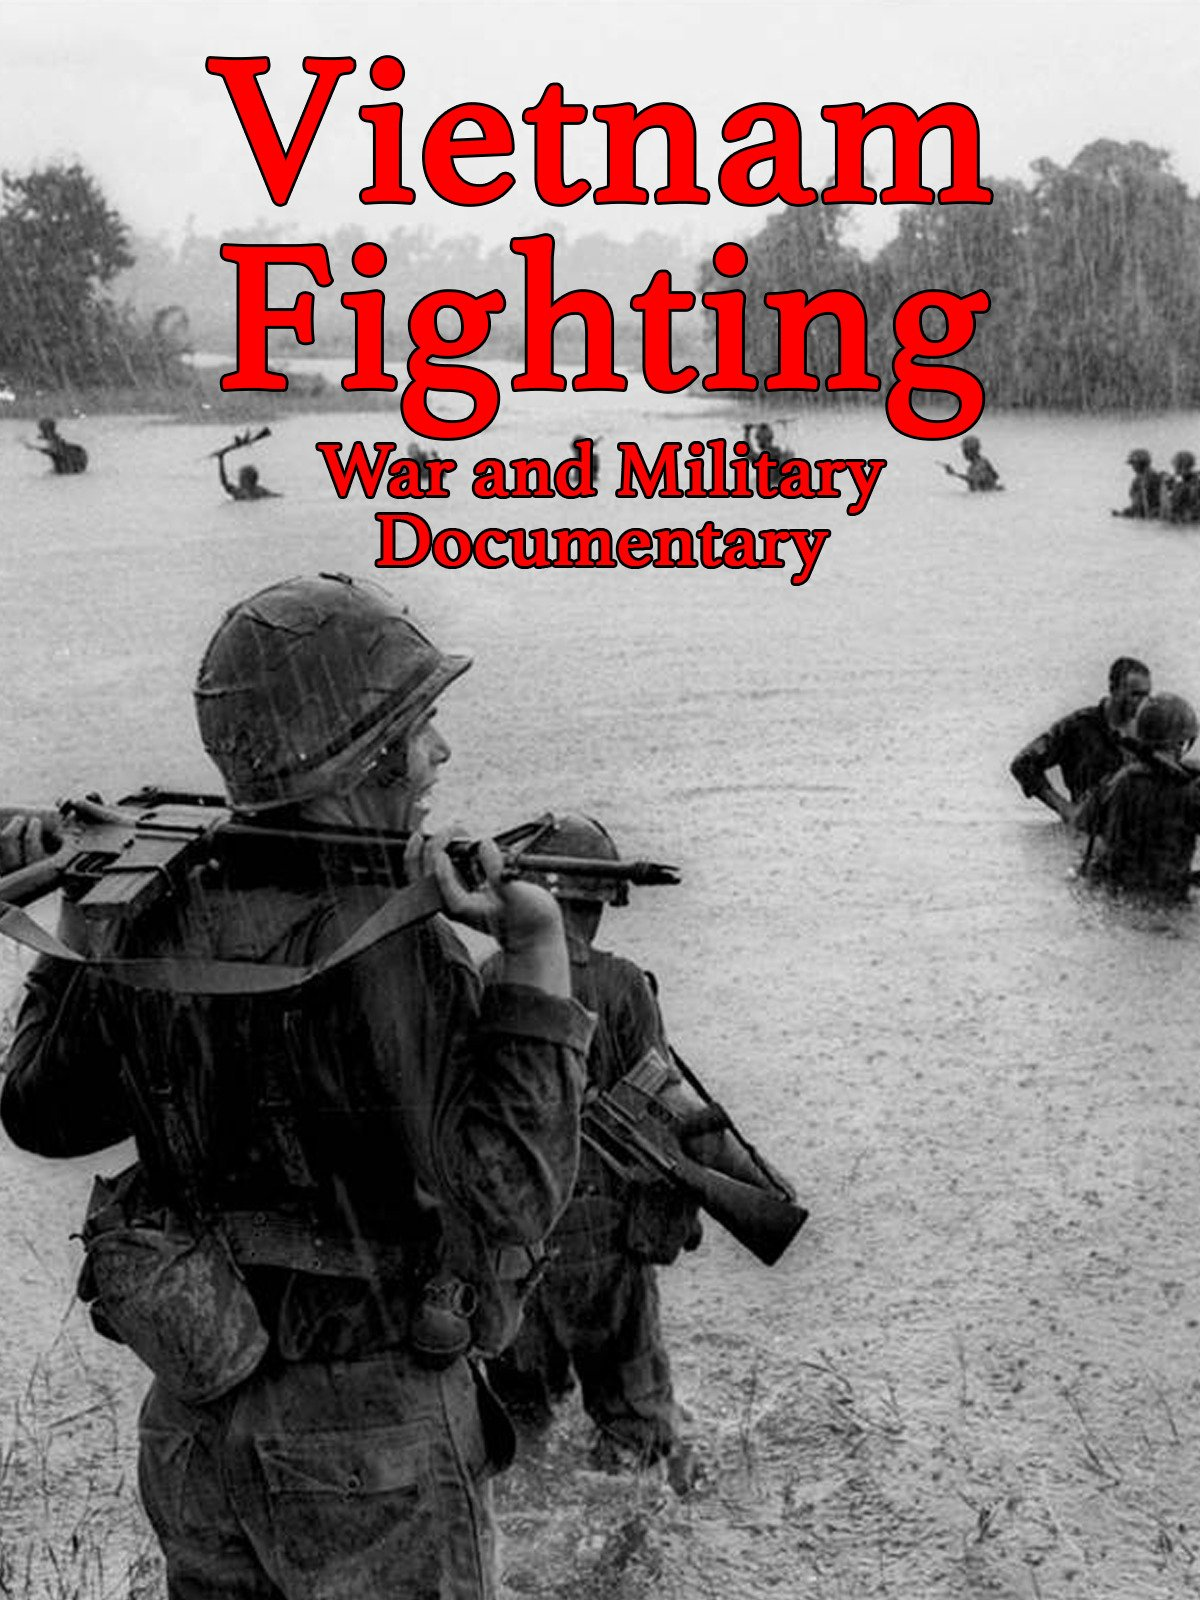 Vietnam Fighting: War and Military Documentary